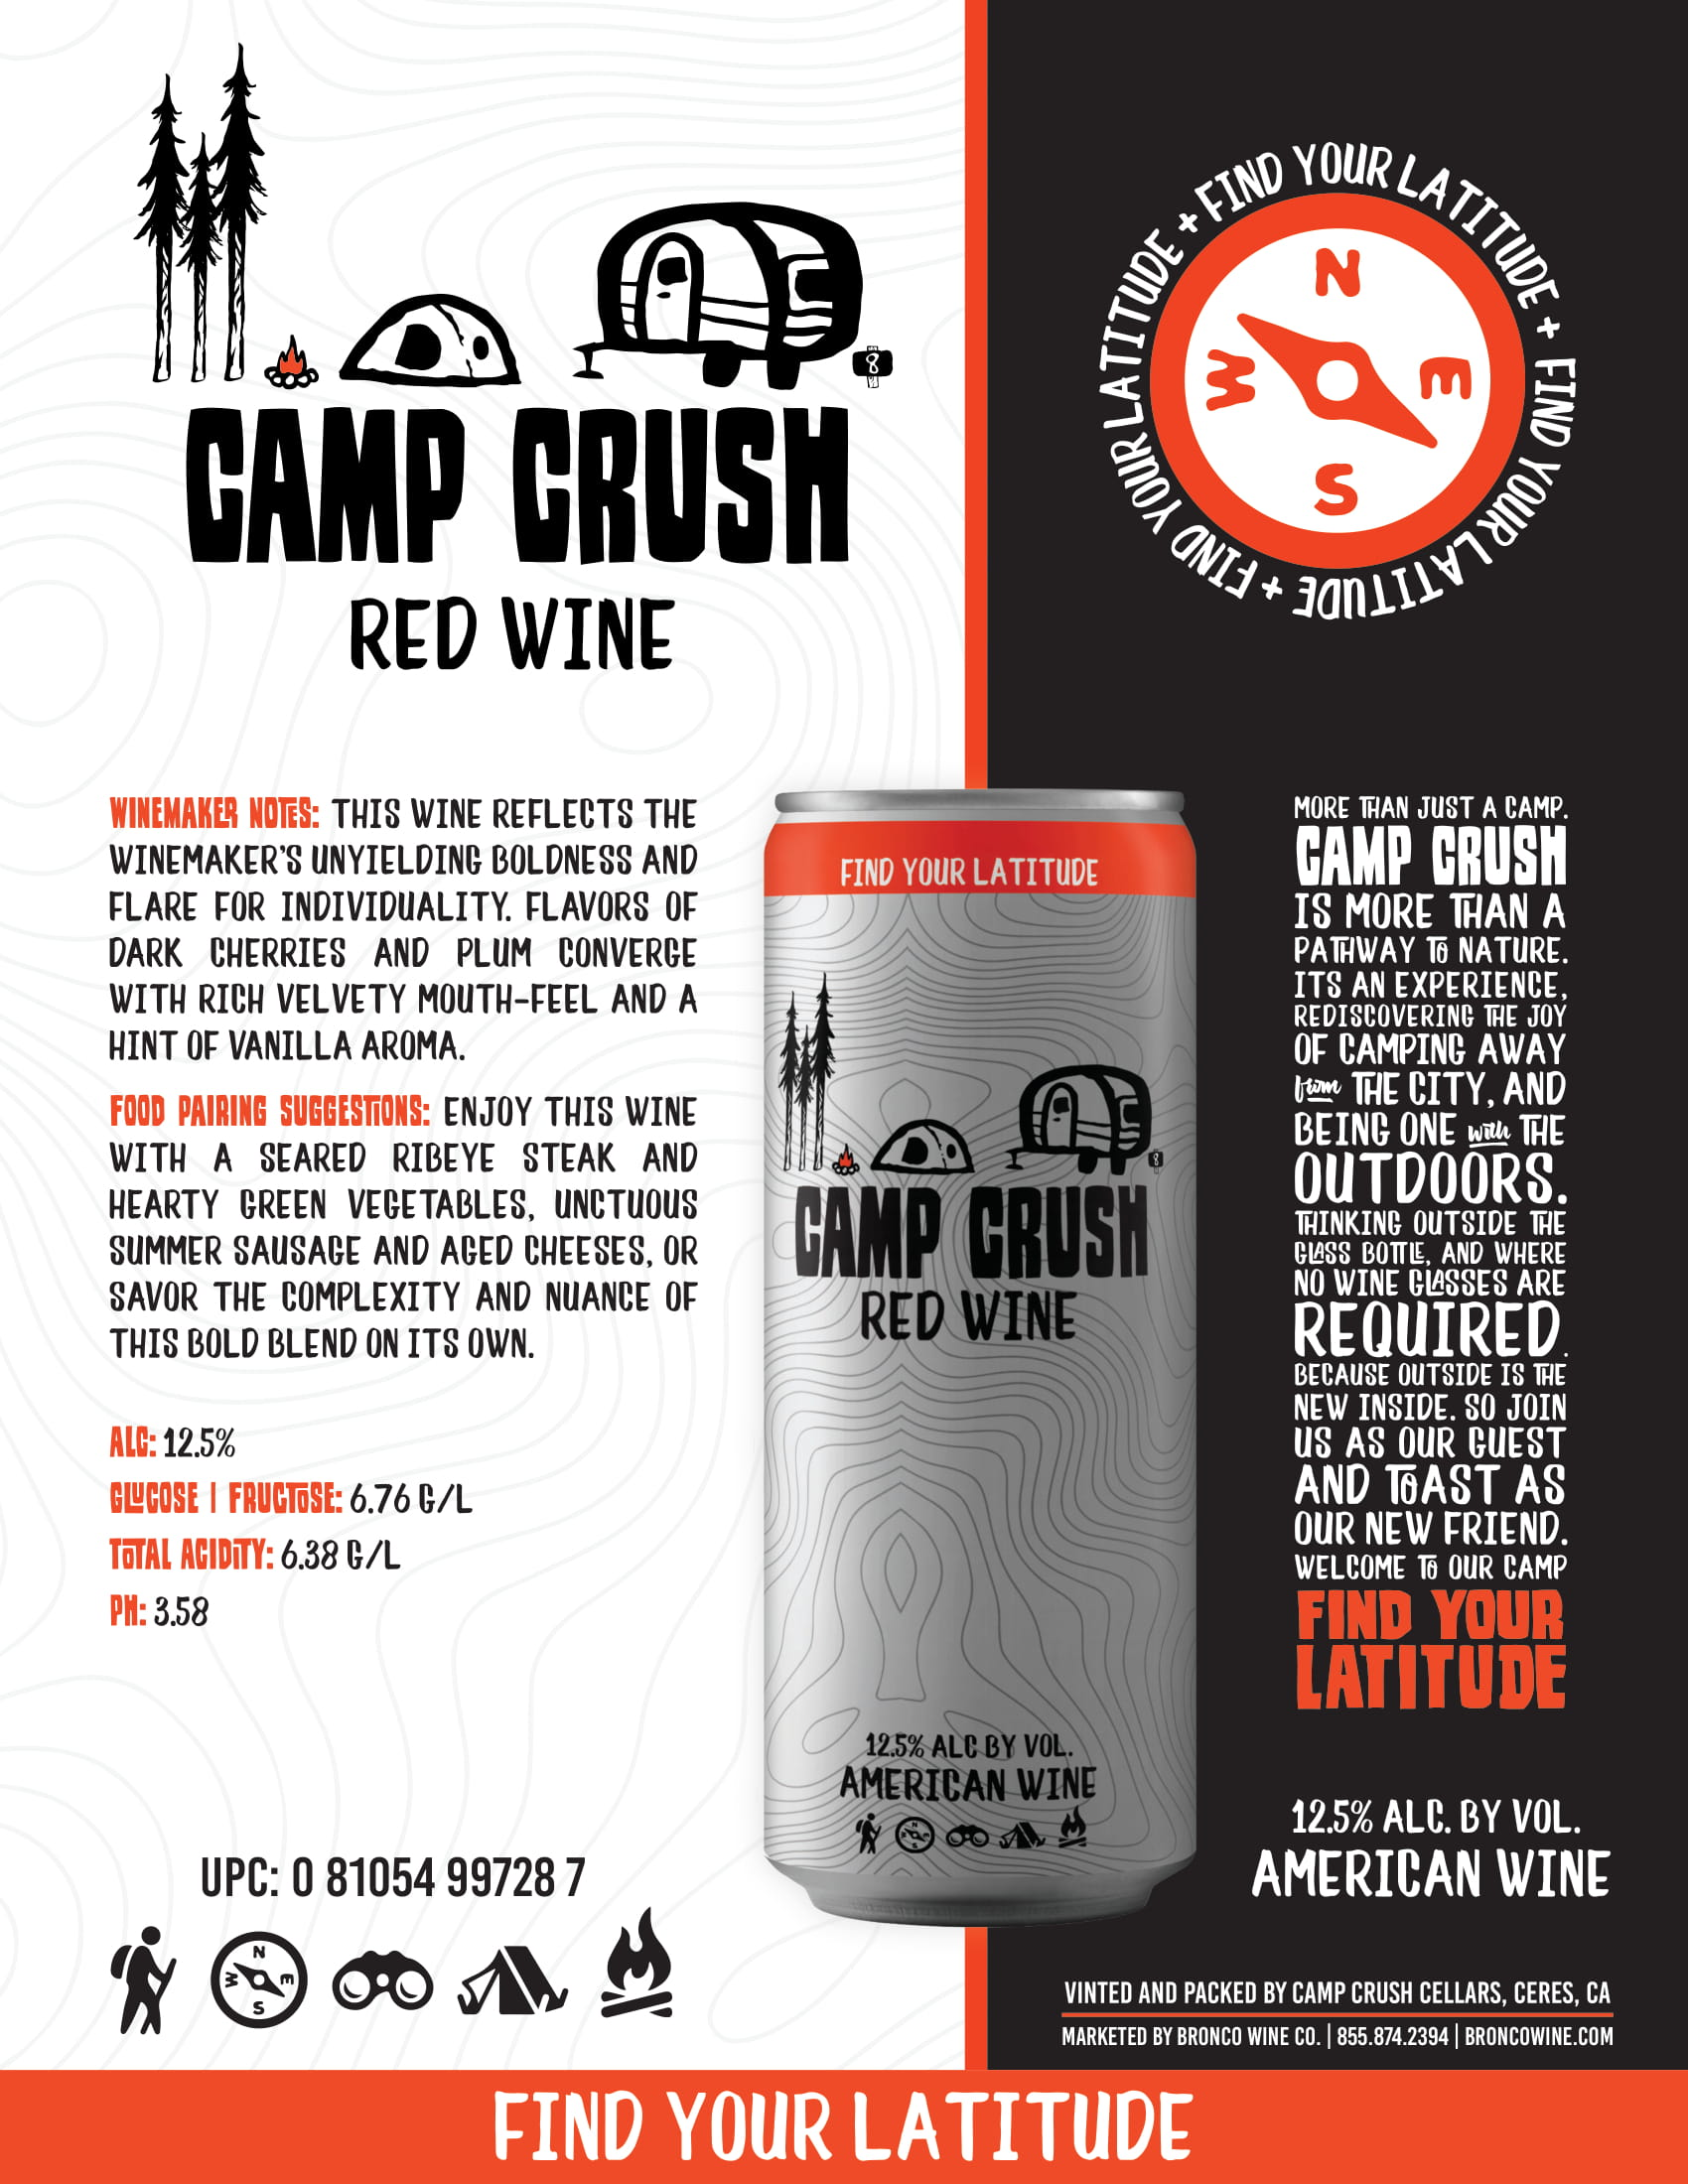 Camp Crush Red Wine Sell Sheet